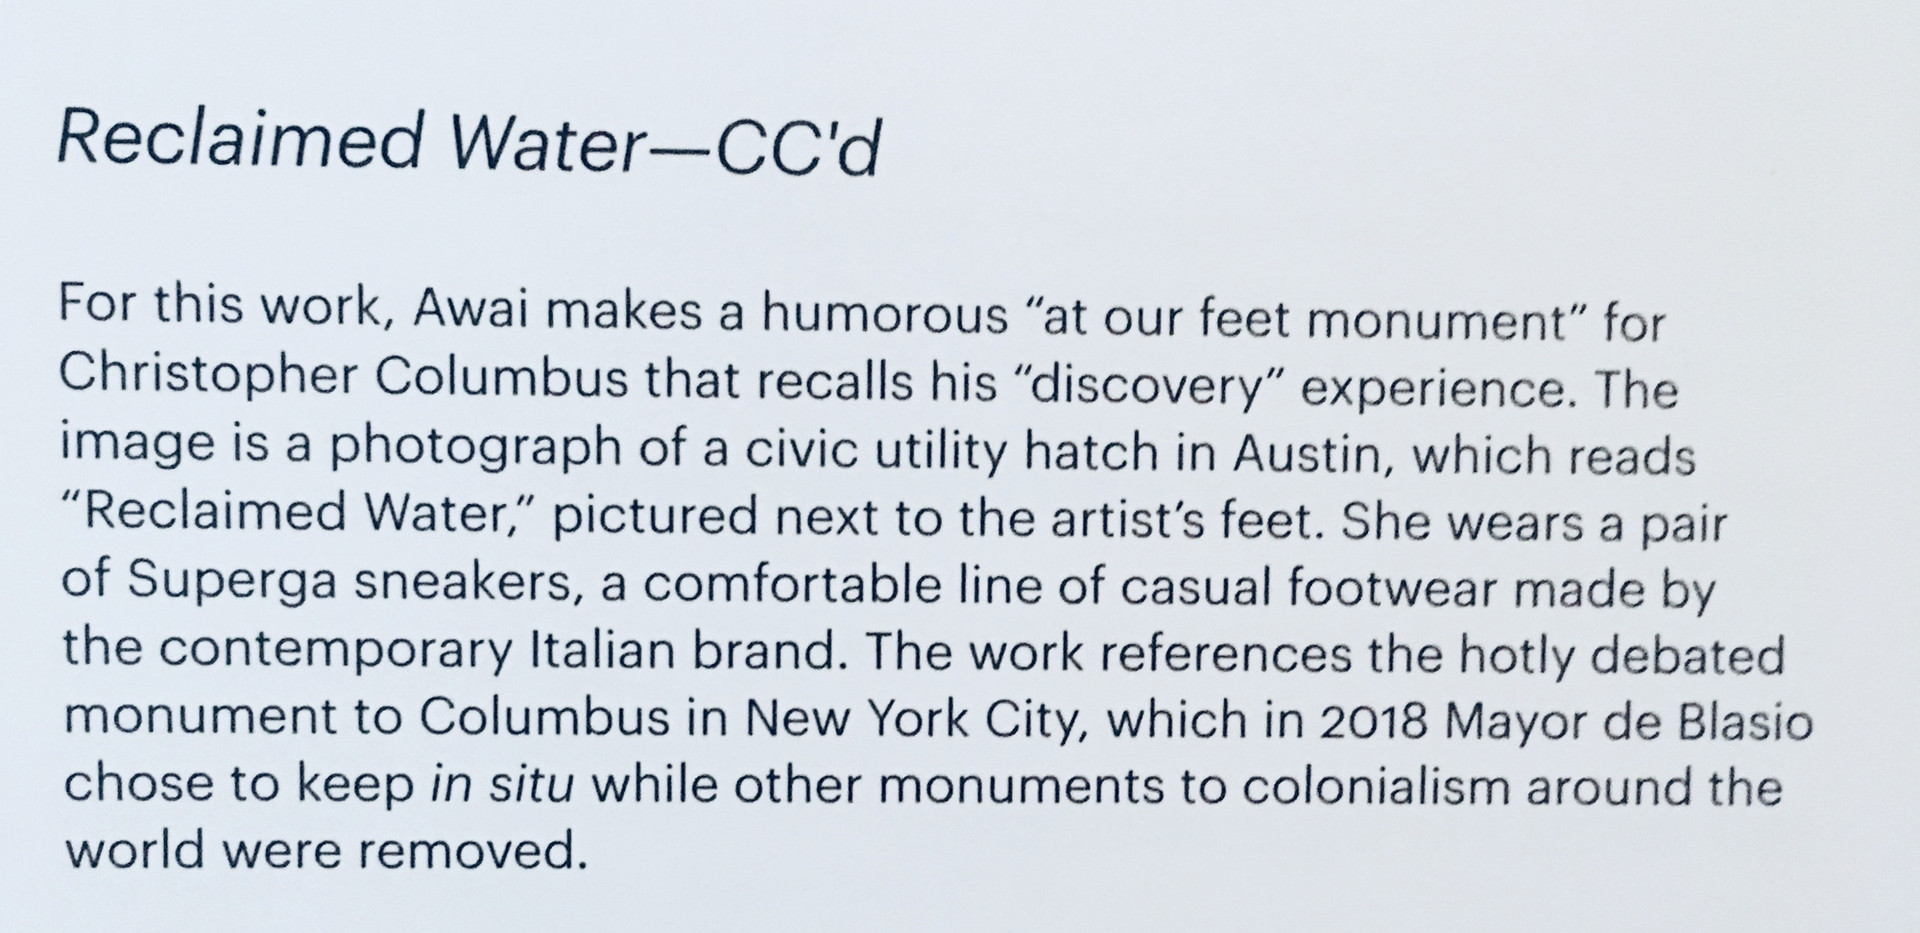 Reclaimed Water CCd